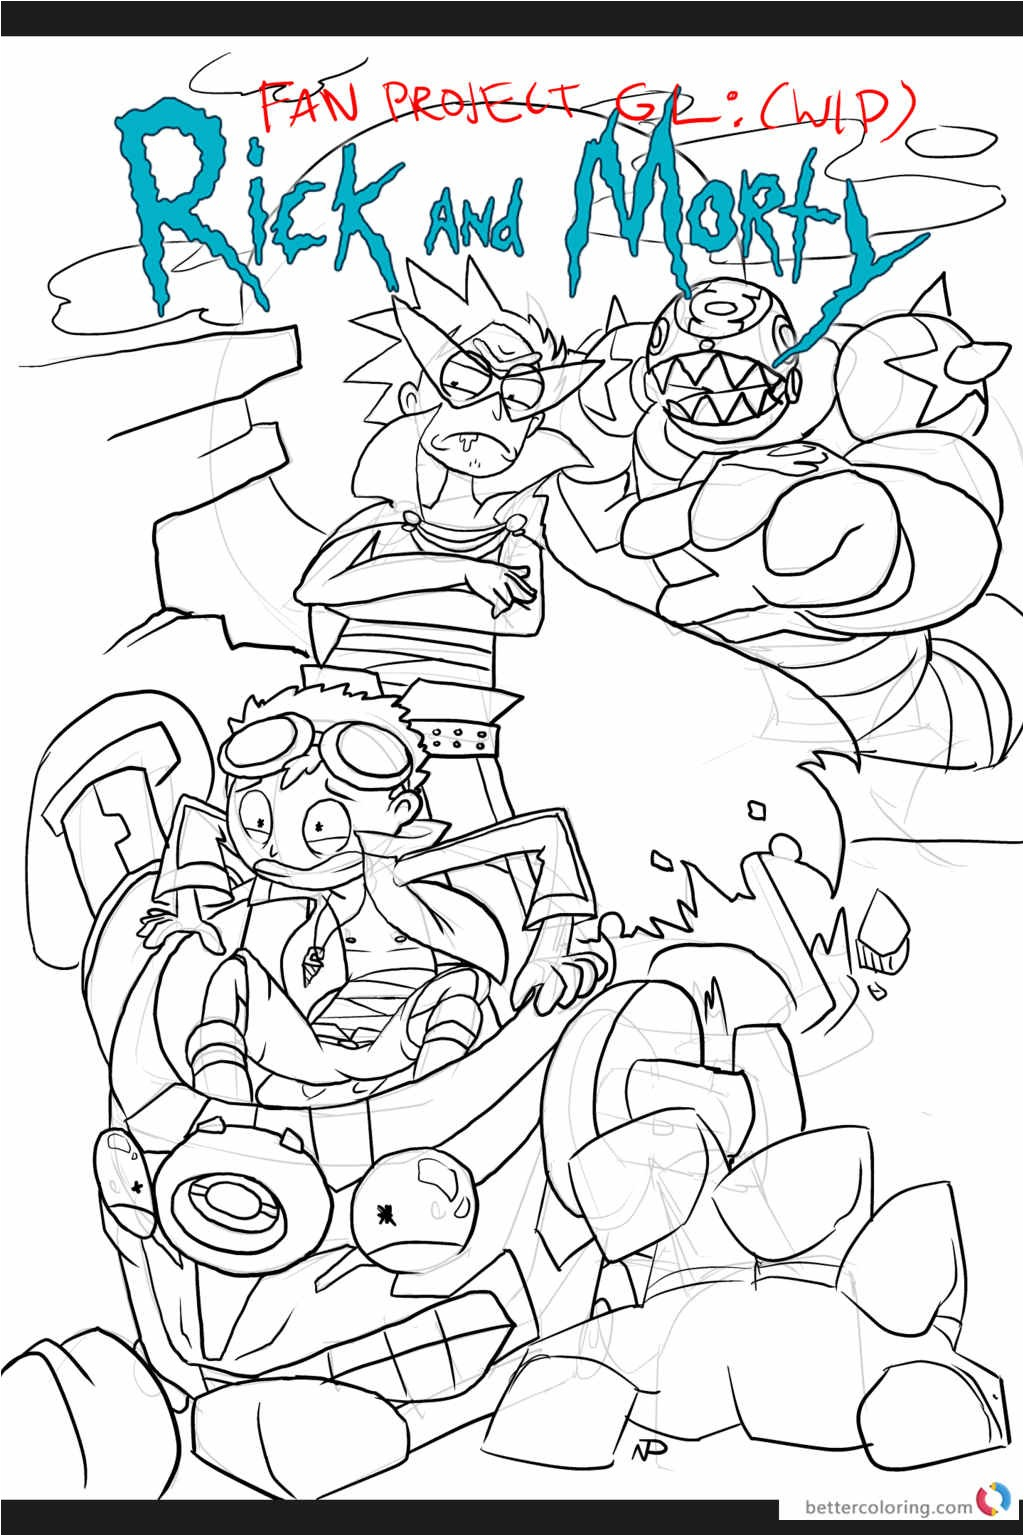 Rick And Morty Coloring Pages Rick And Morty Coloring Pages Cool Coloring Pages